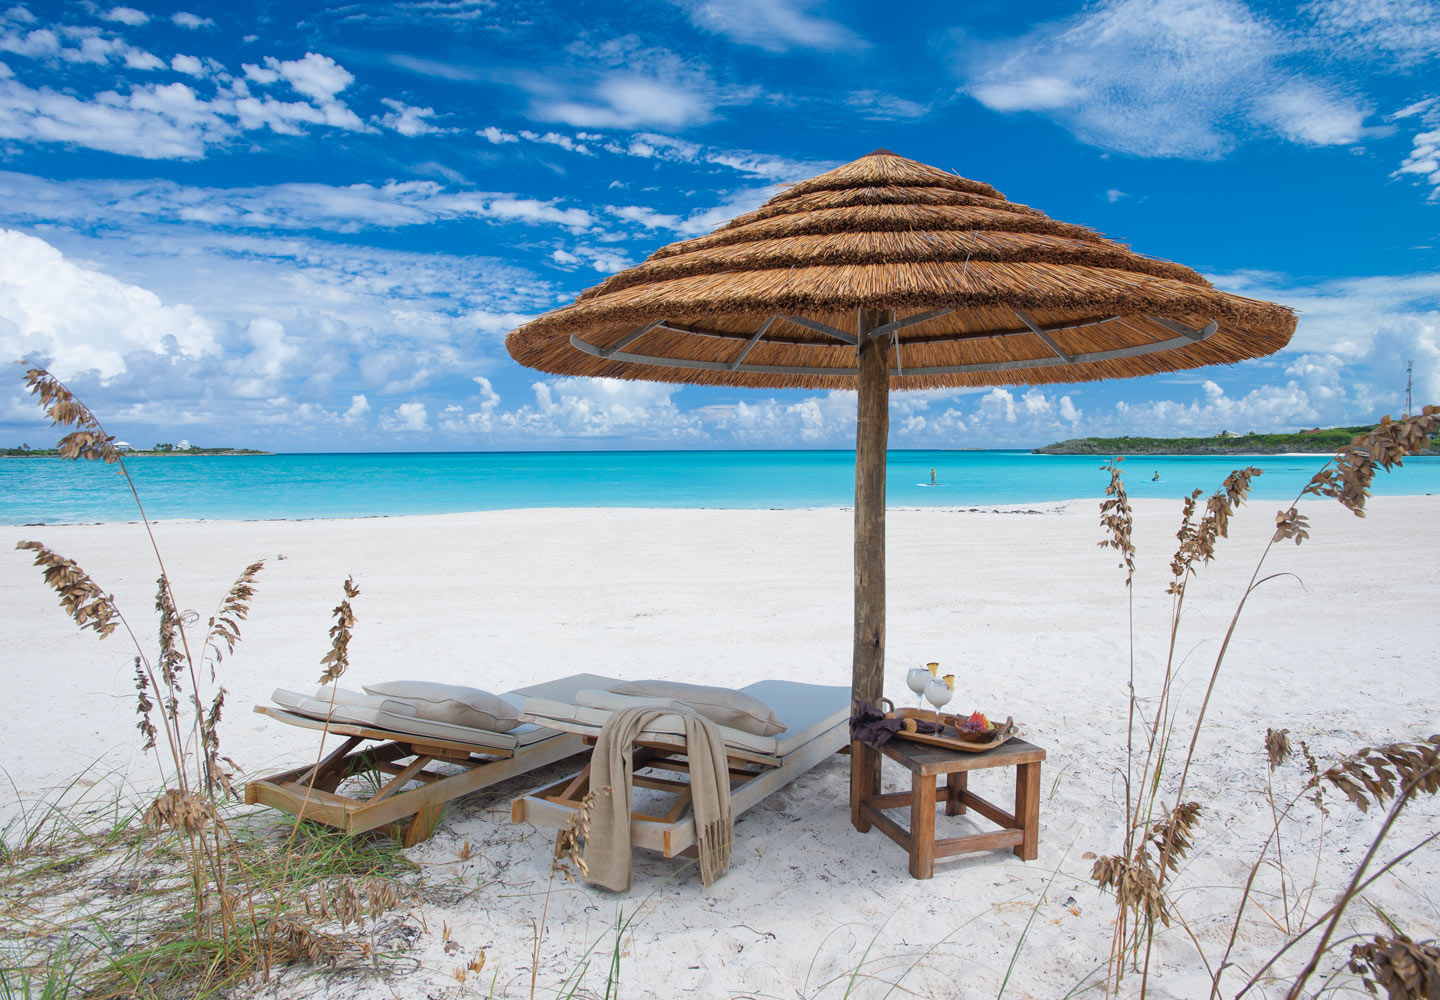 Which Sandals Resort Has The Best Beach Dreams And